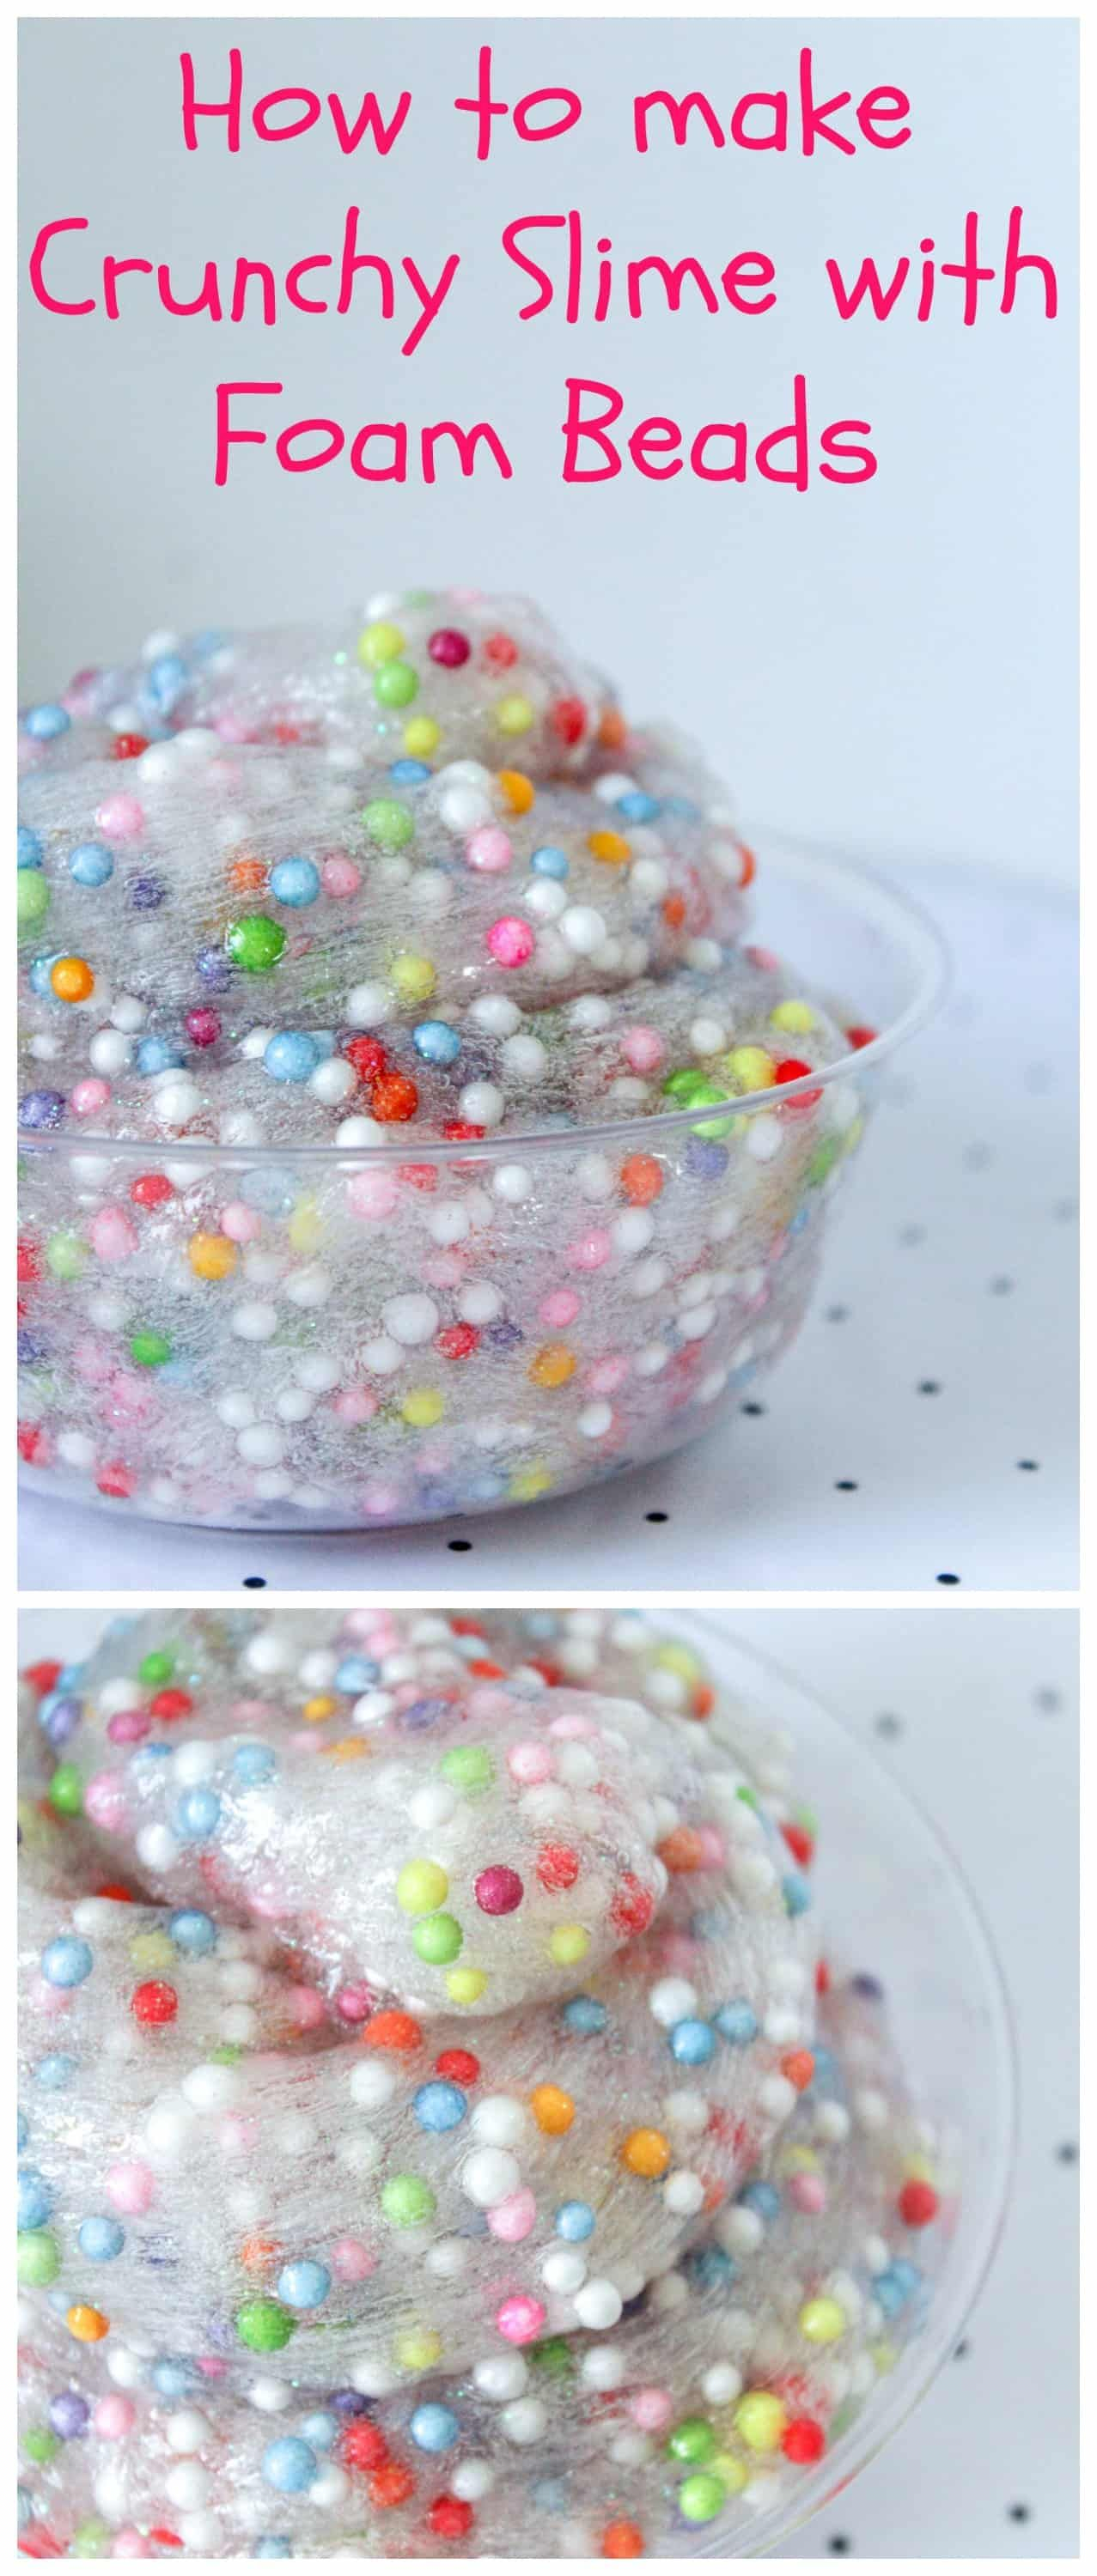 How To Make Crunchy Slime With Foam Beads